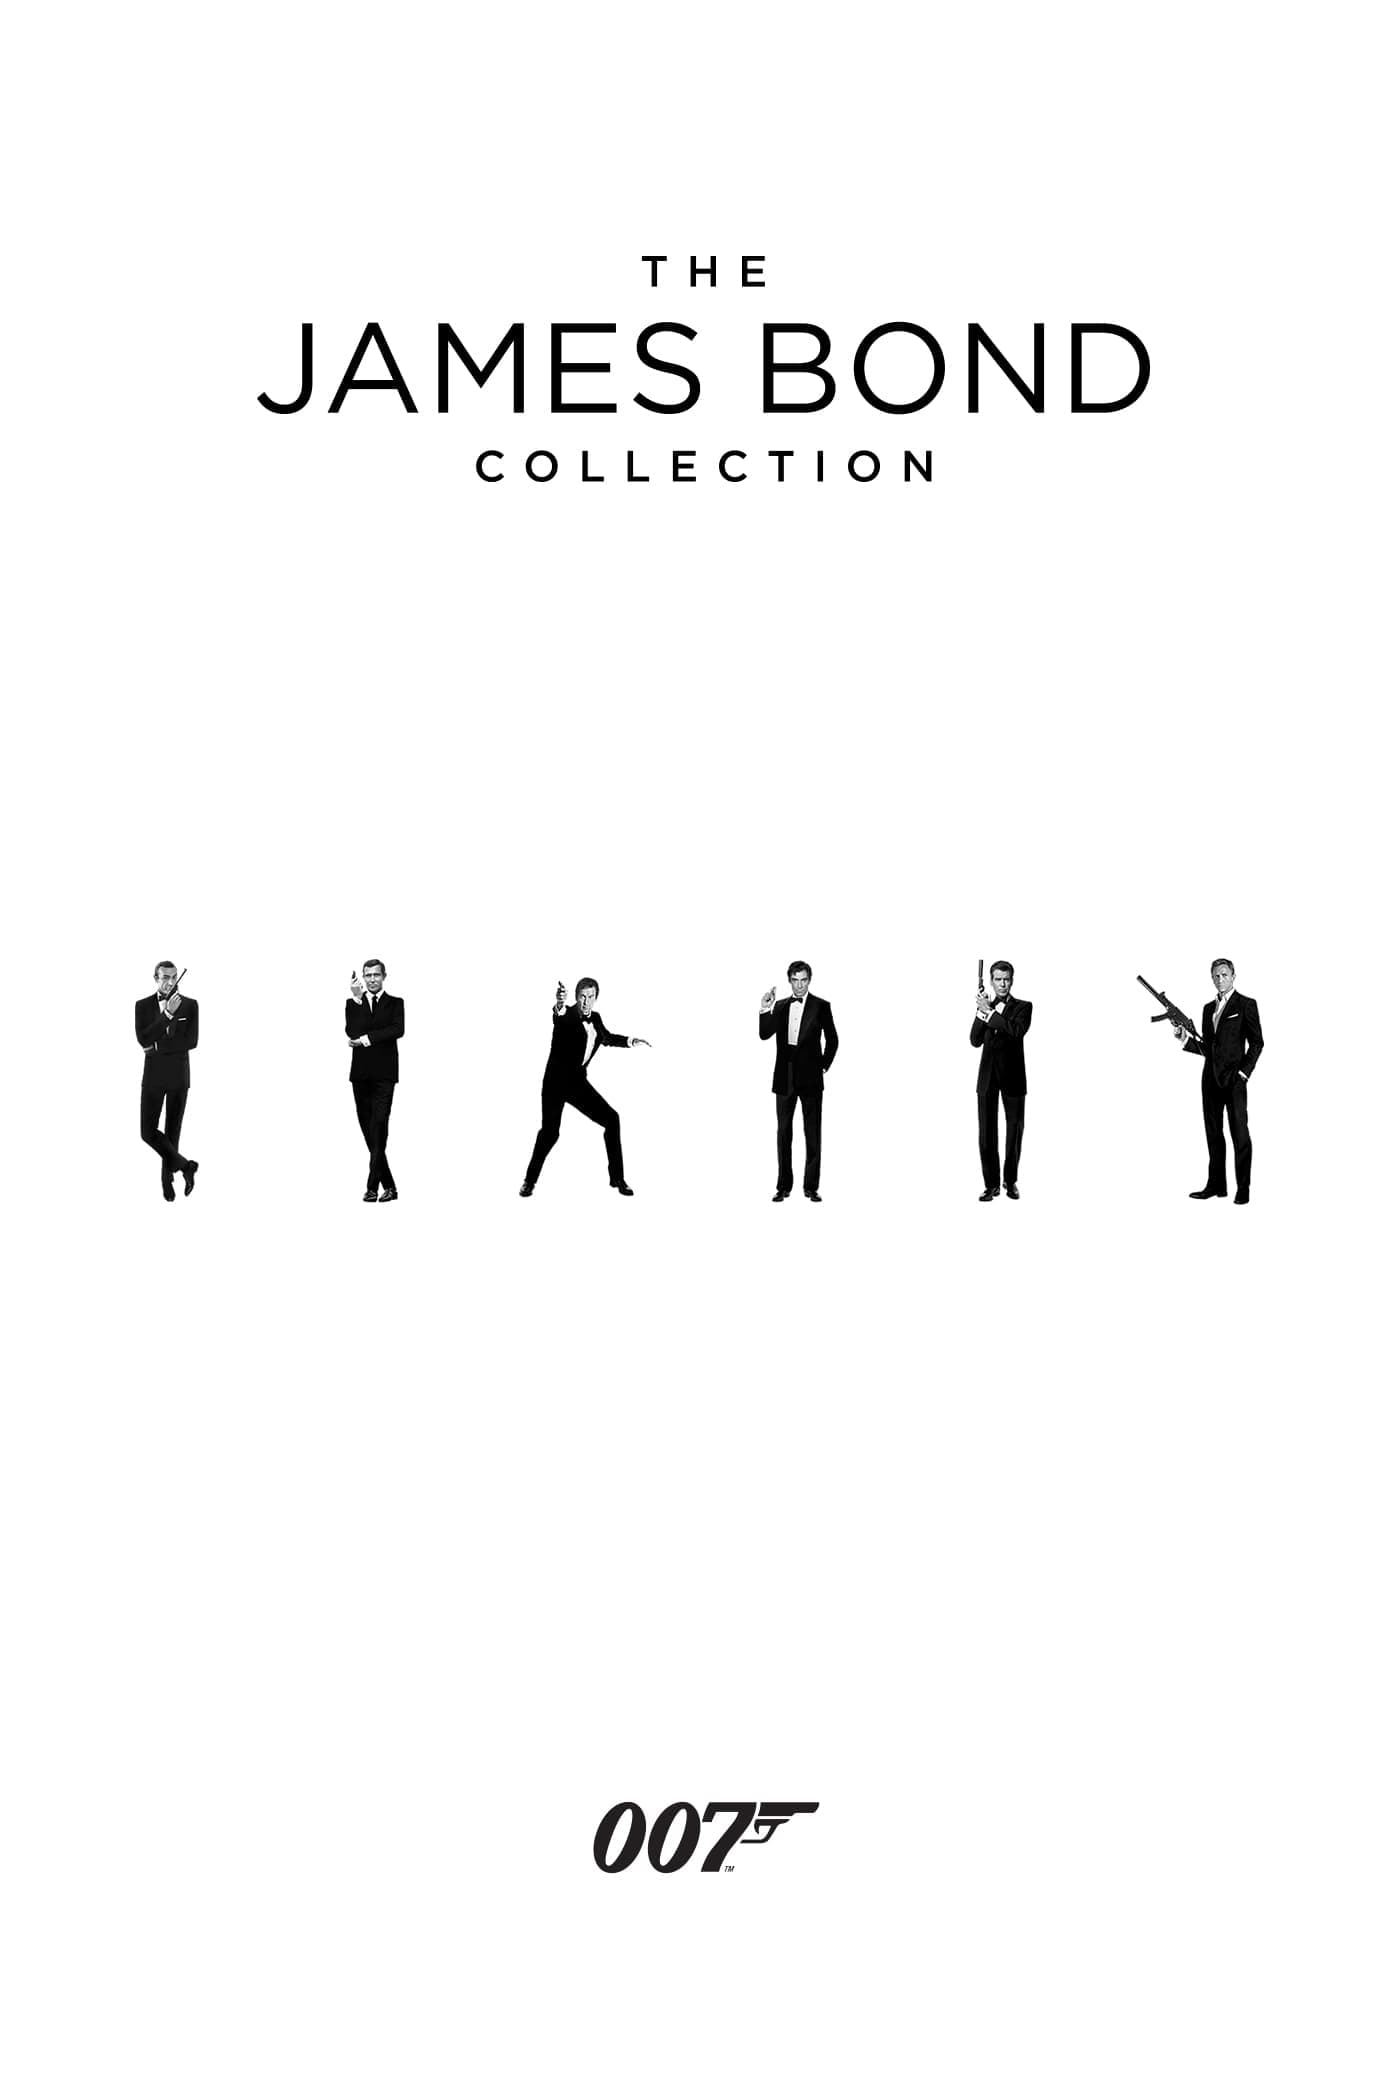 James Bond Collection  The Movie Database